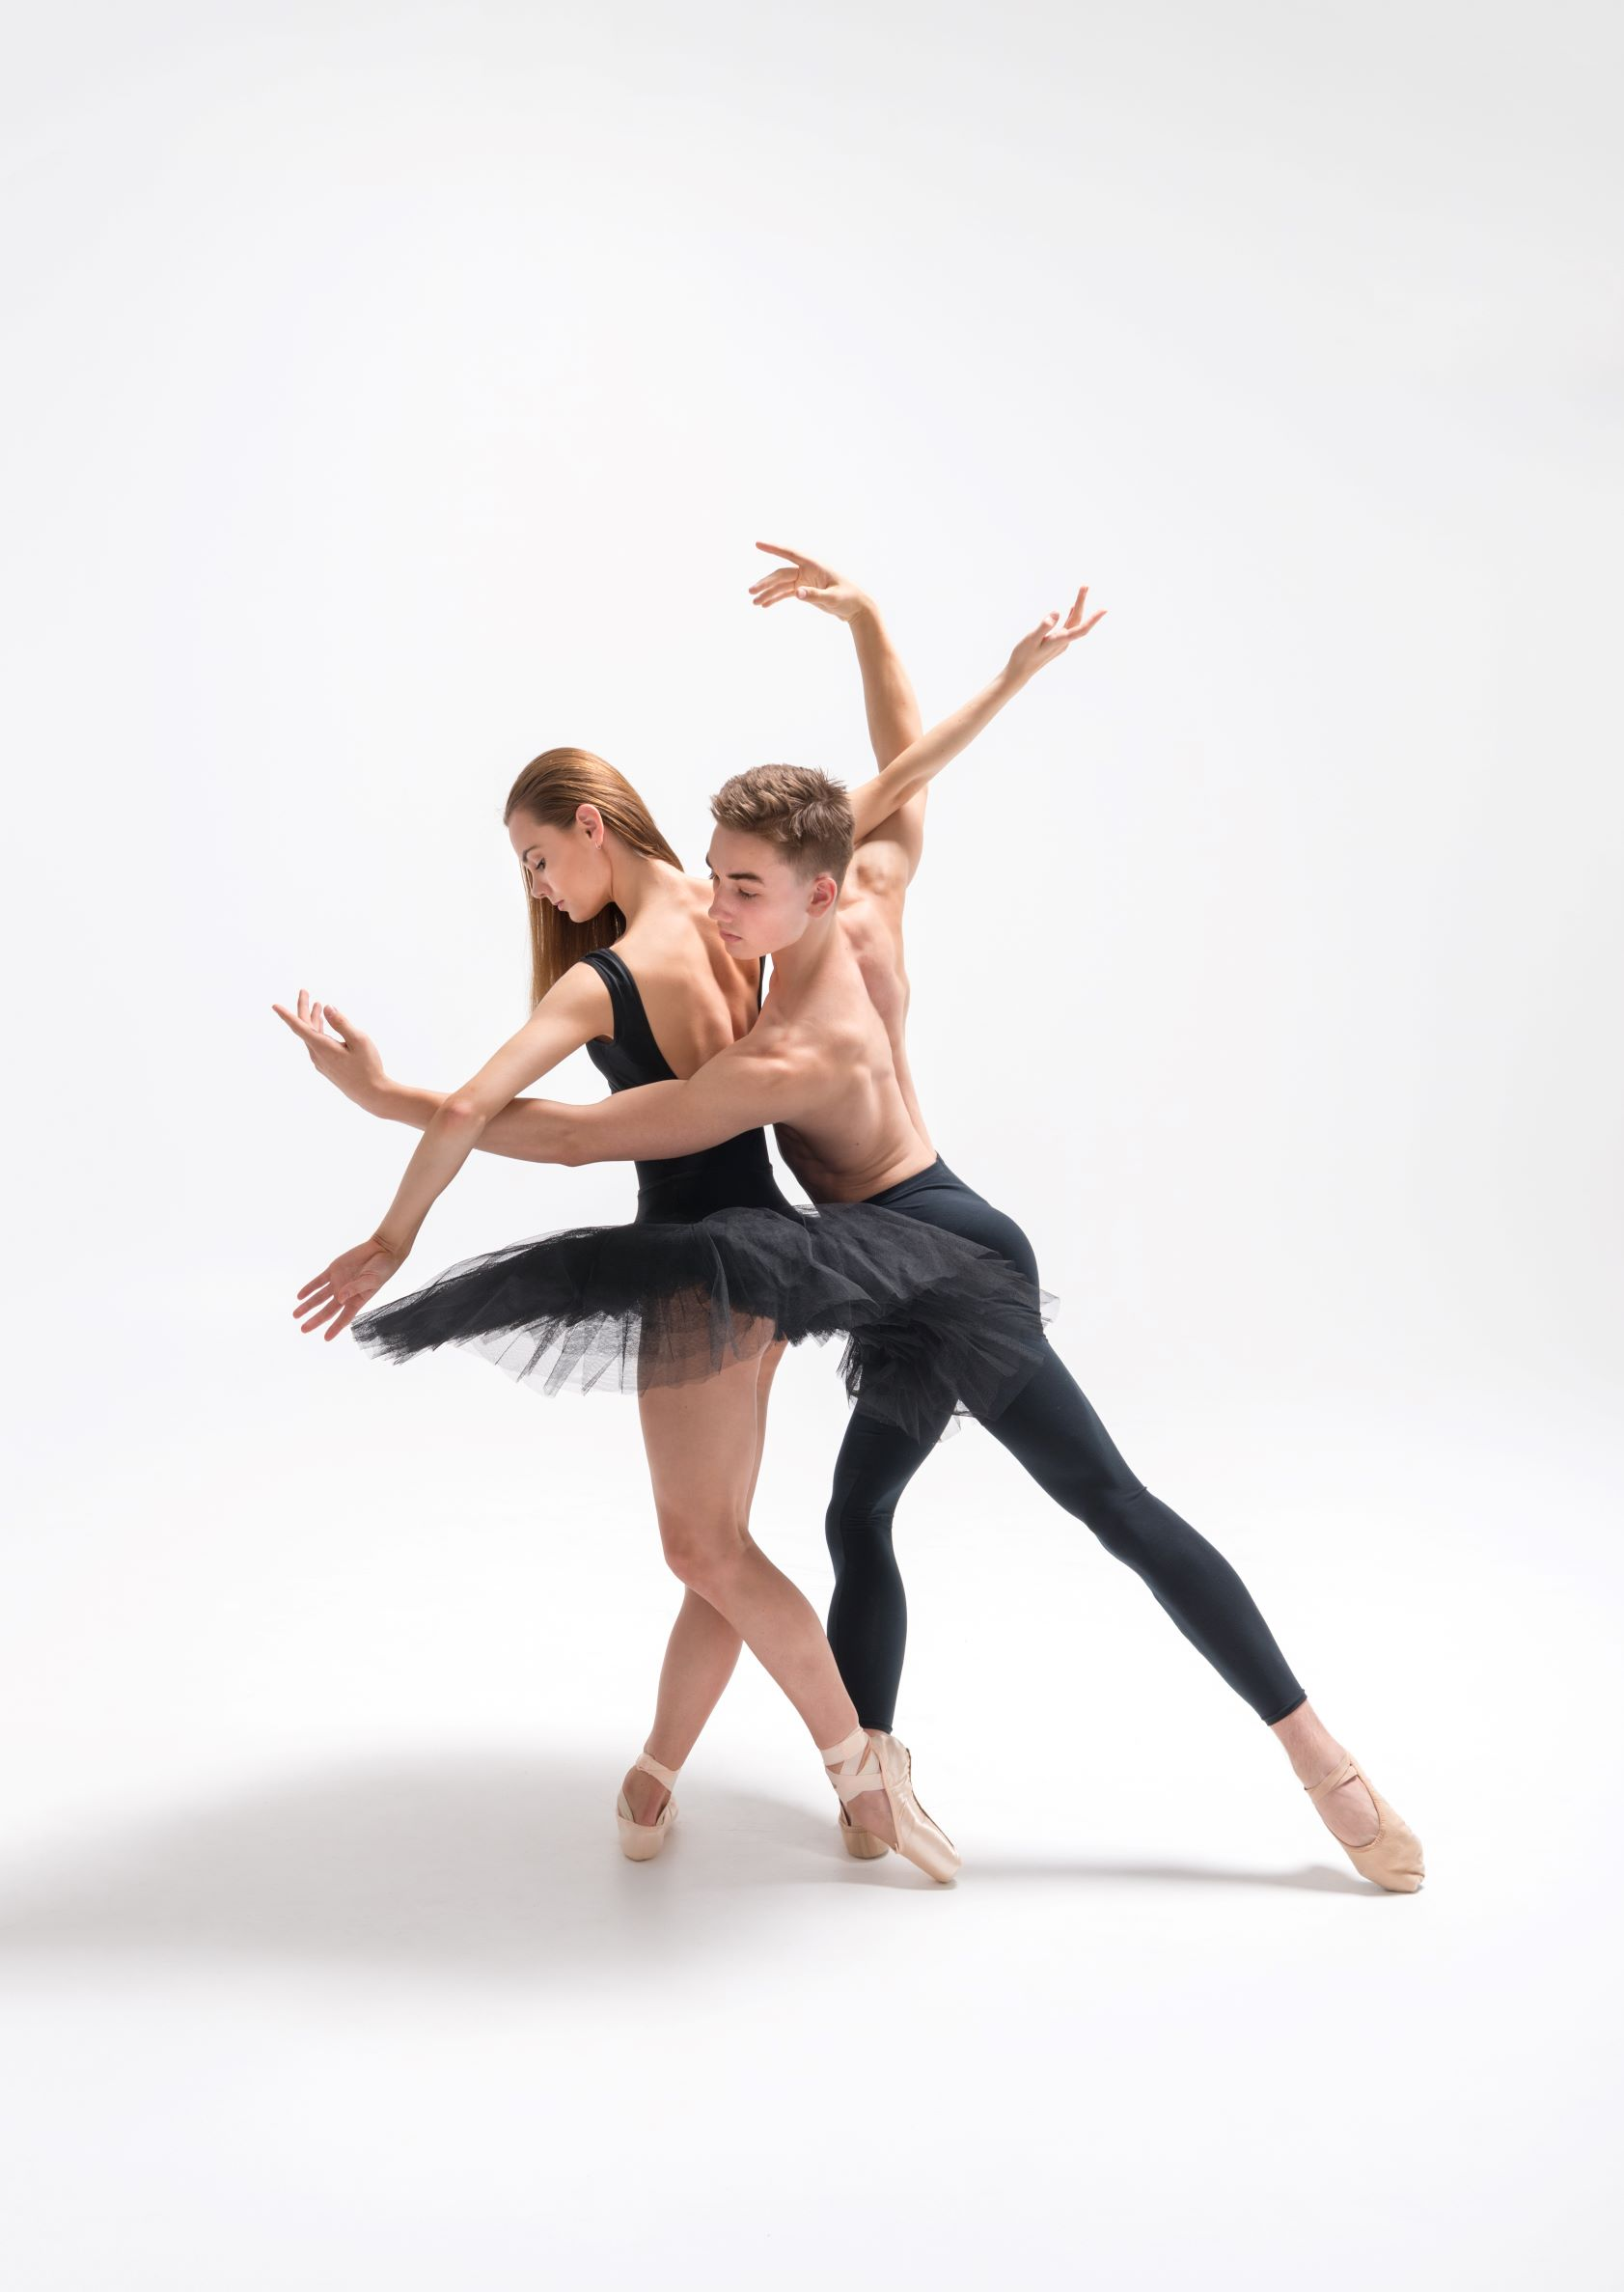 NZSD 2018 classical ballet students Cadence Barrack & Louis Ahlers